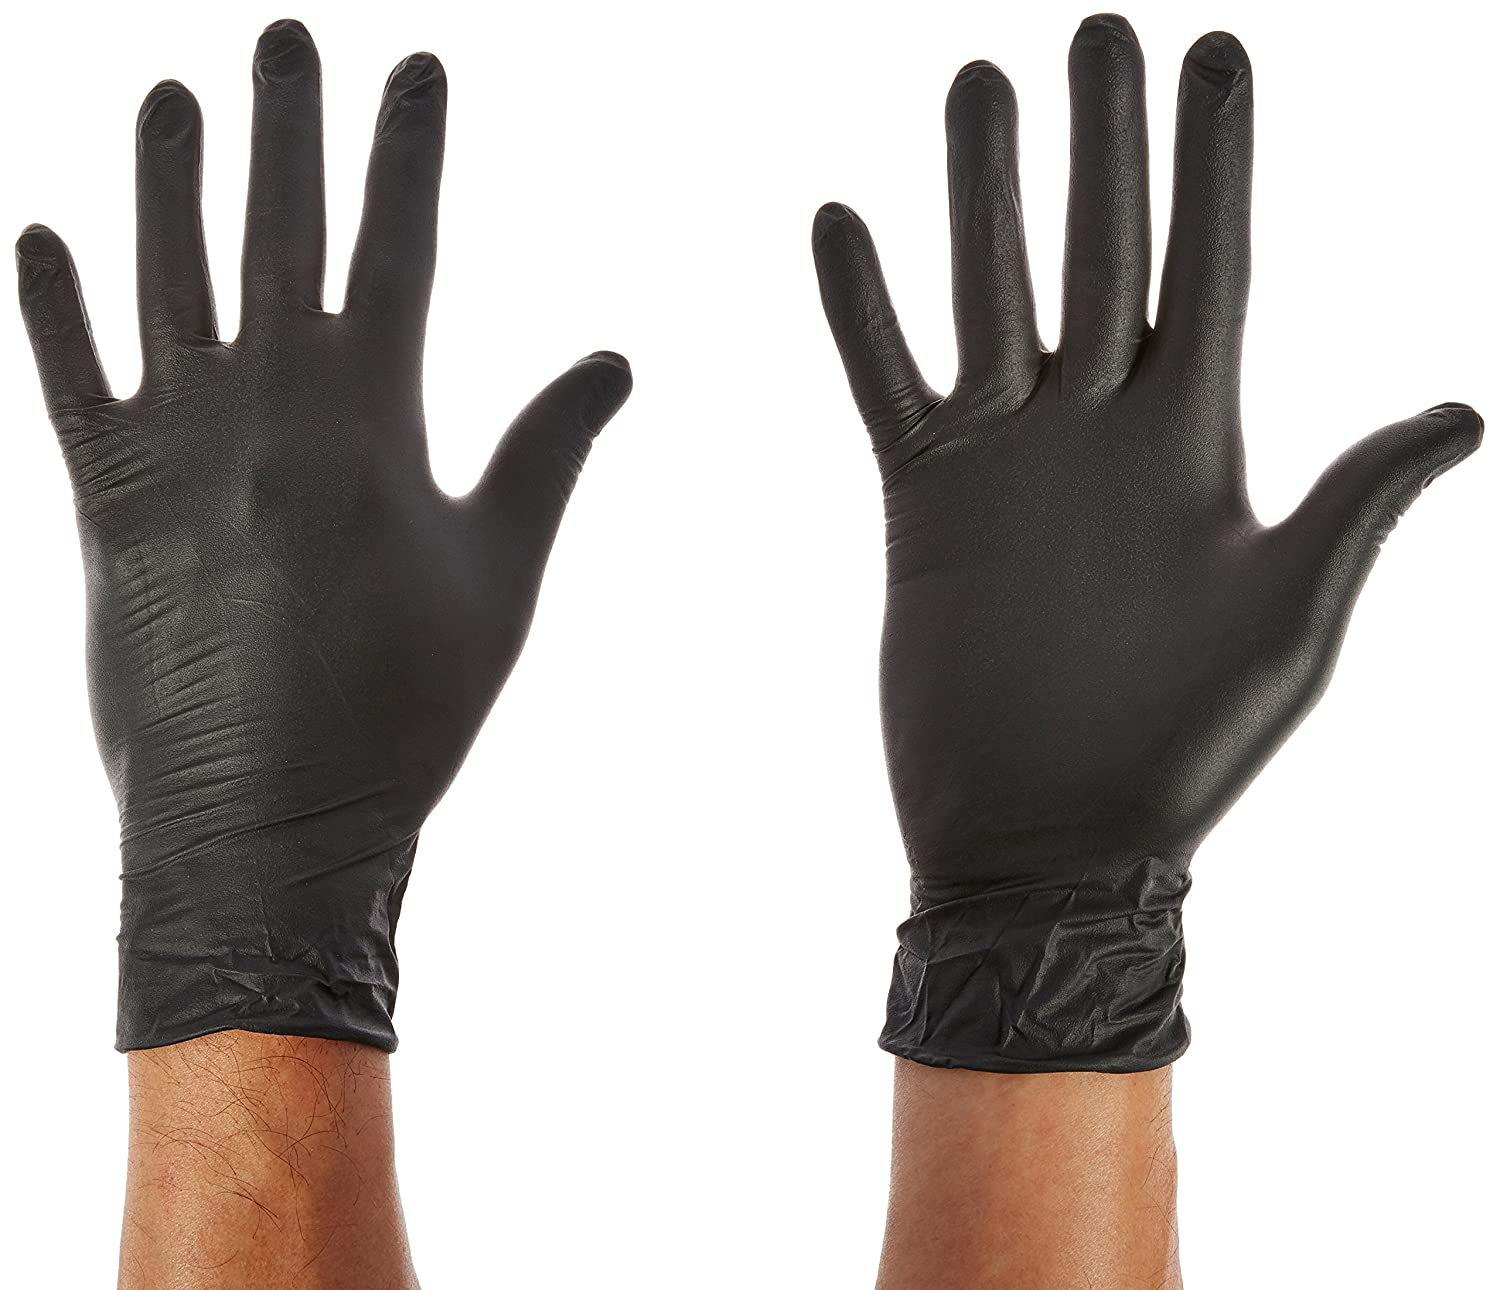 Micro Flex MK-296-S Safety Gloves